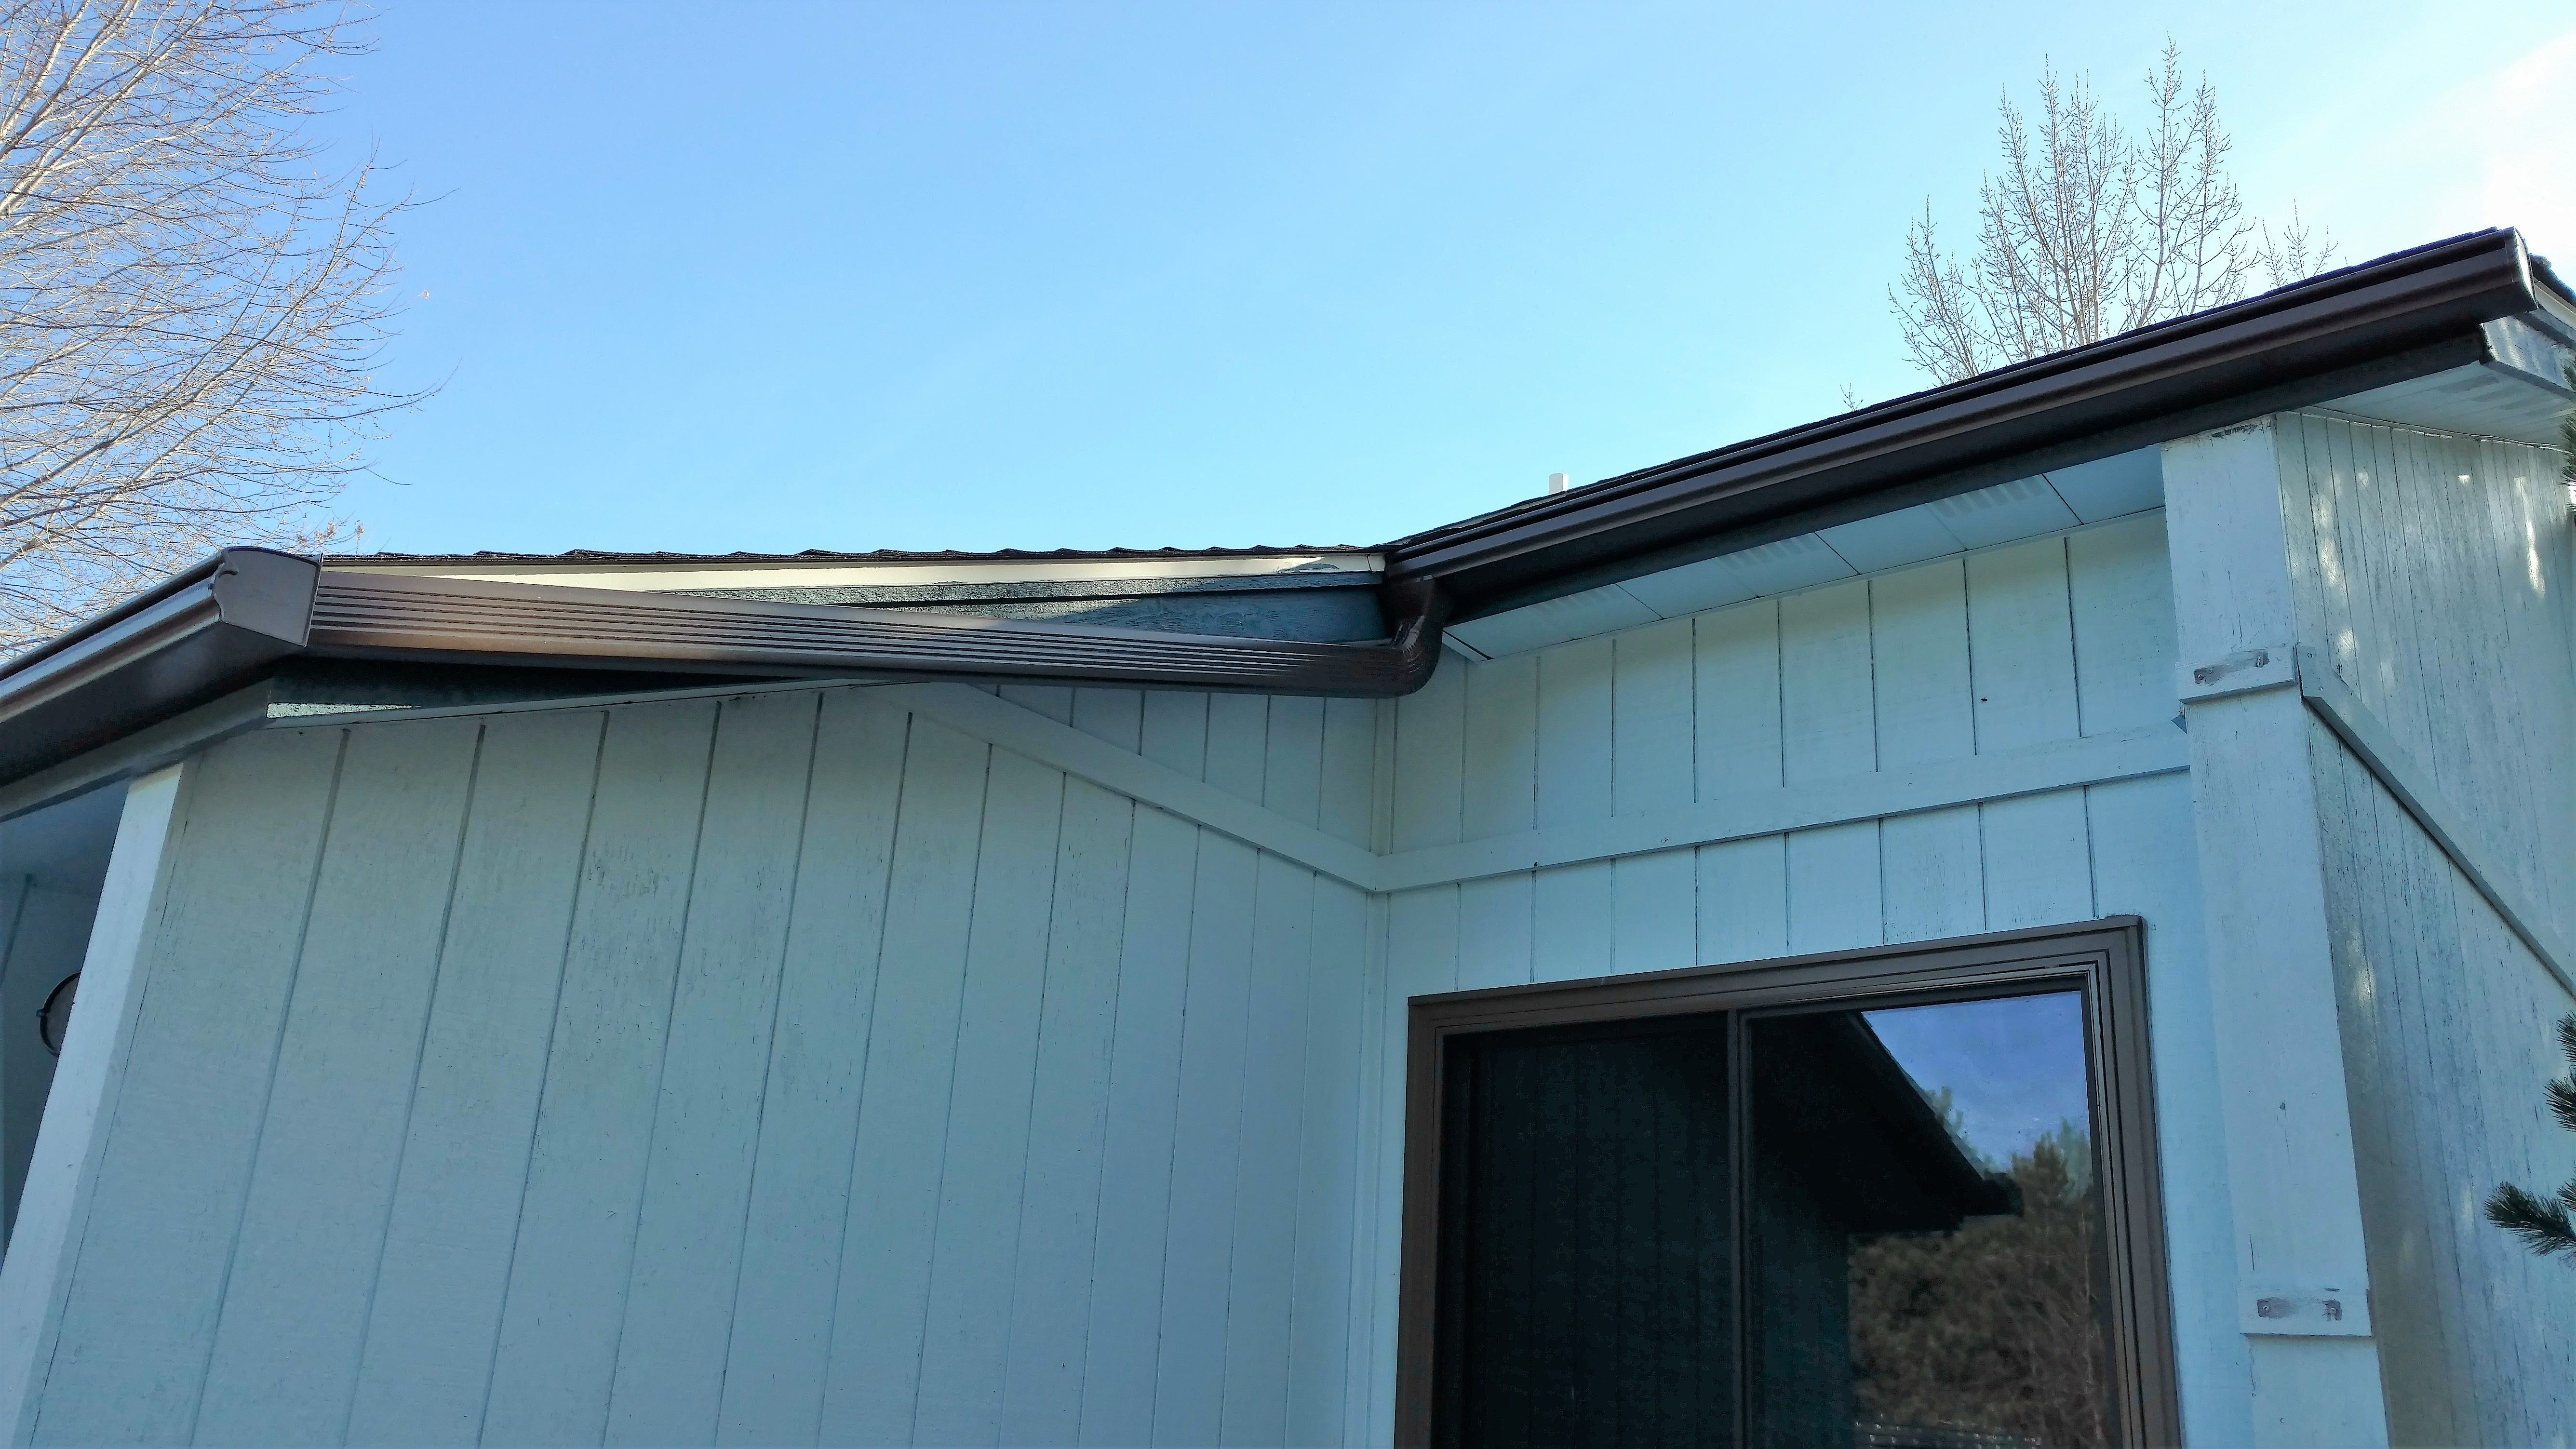 Leafguard Gutter System With Custom Downspouts Completed October 2018 Leafguardgutters Seamlessgutters Raingutter Seamless Gutters Leaf Guard Gutter Guard